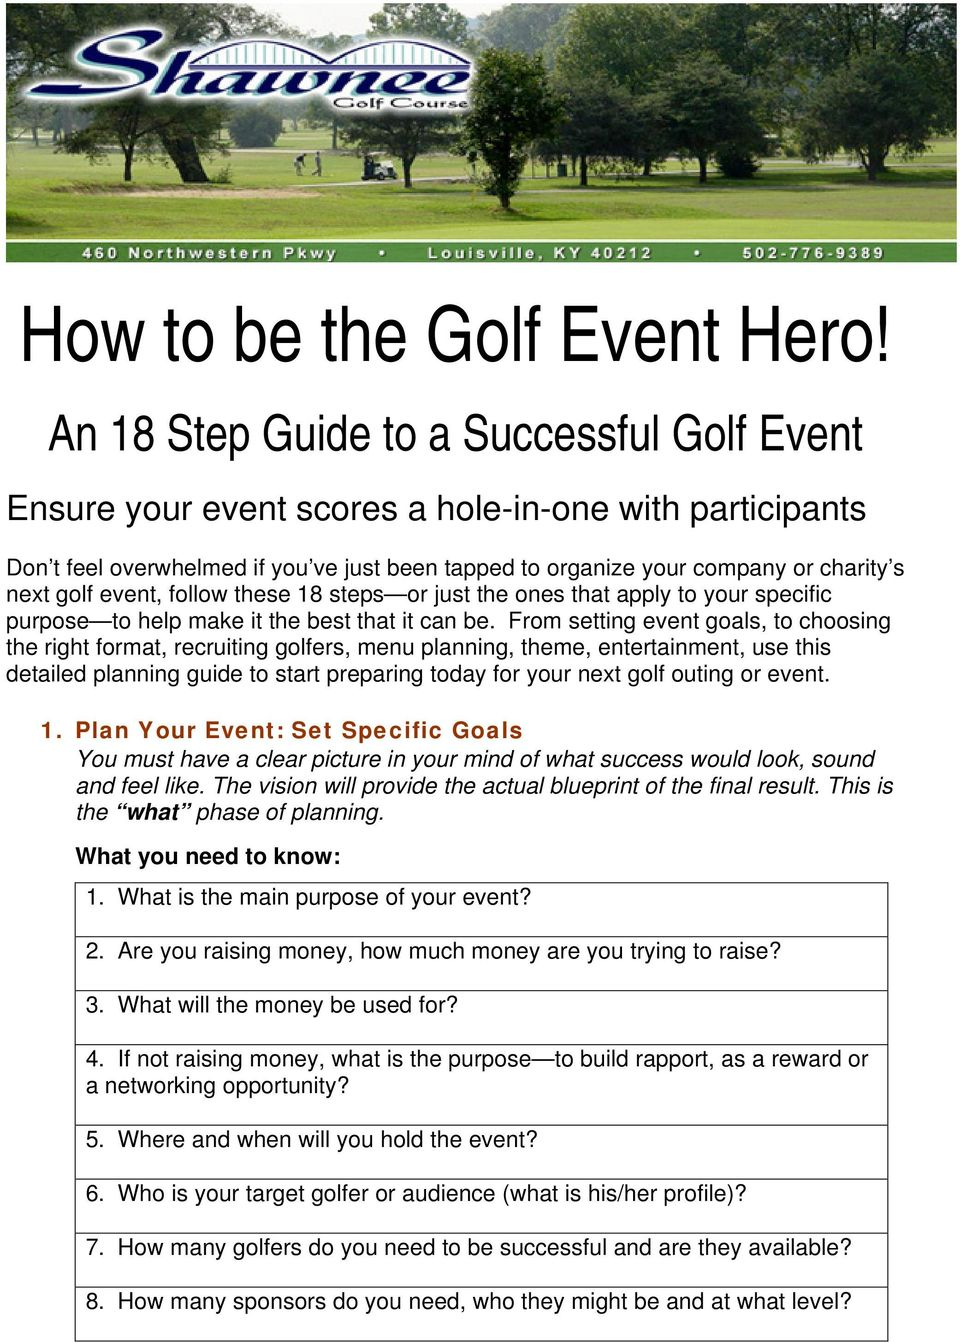 How to be the Golf Event Hero! - PDF